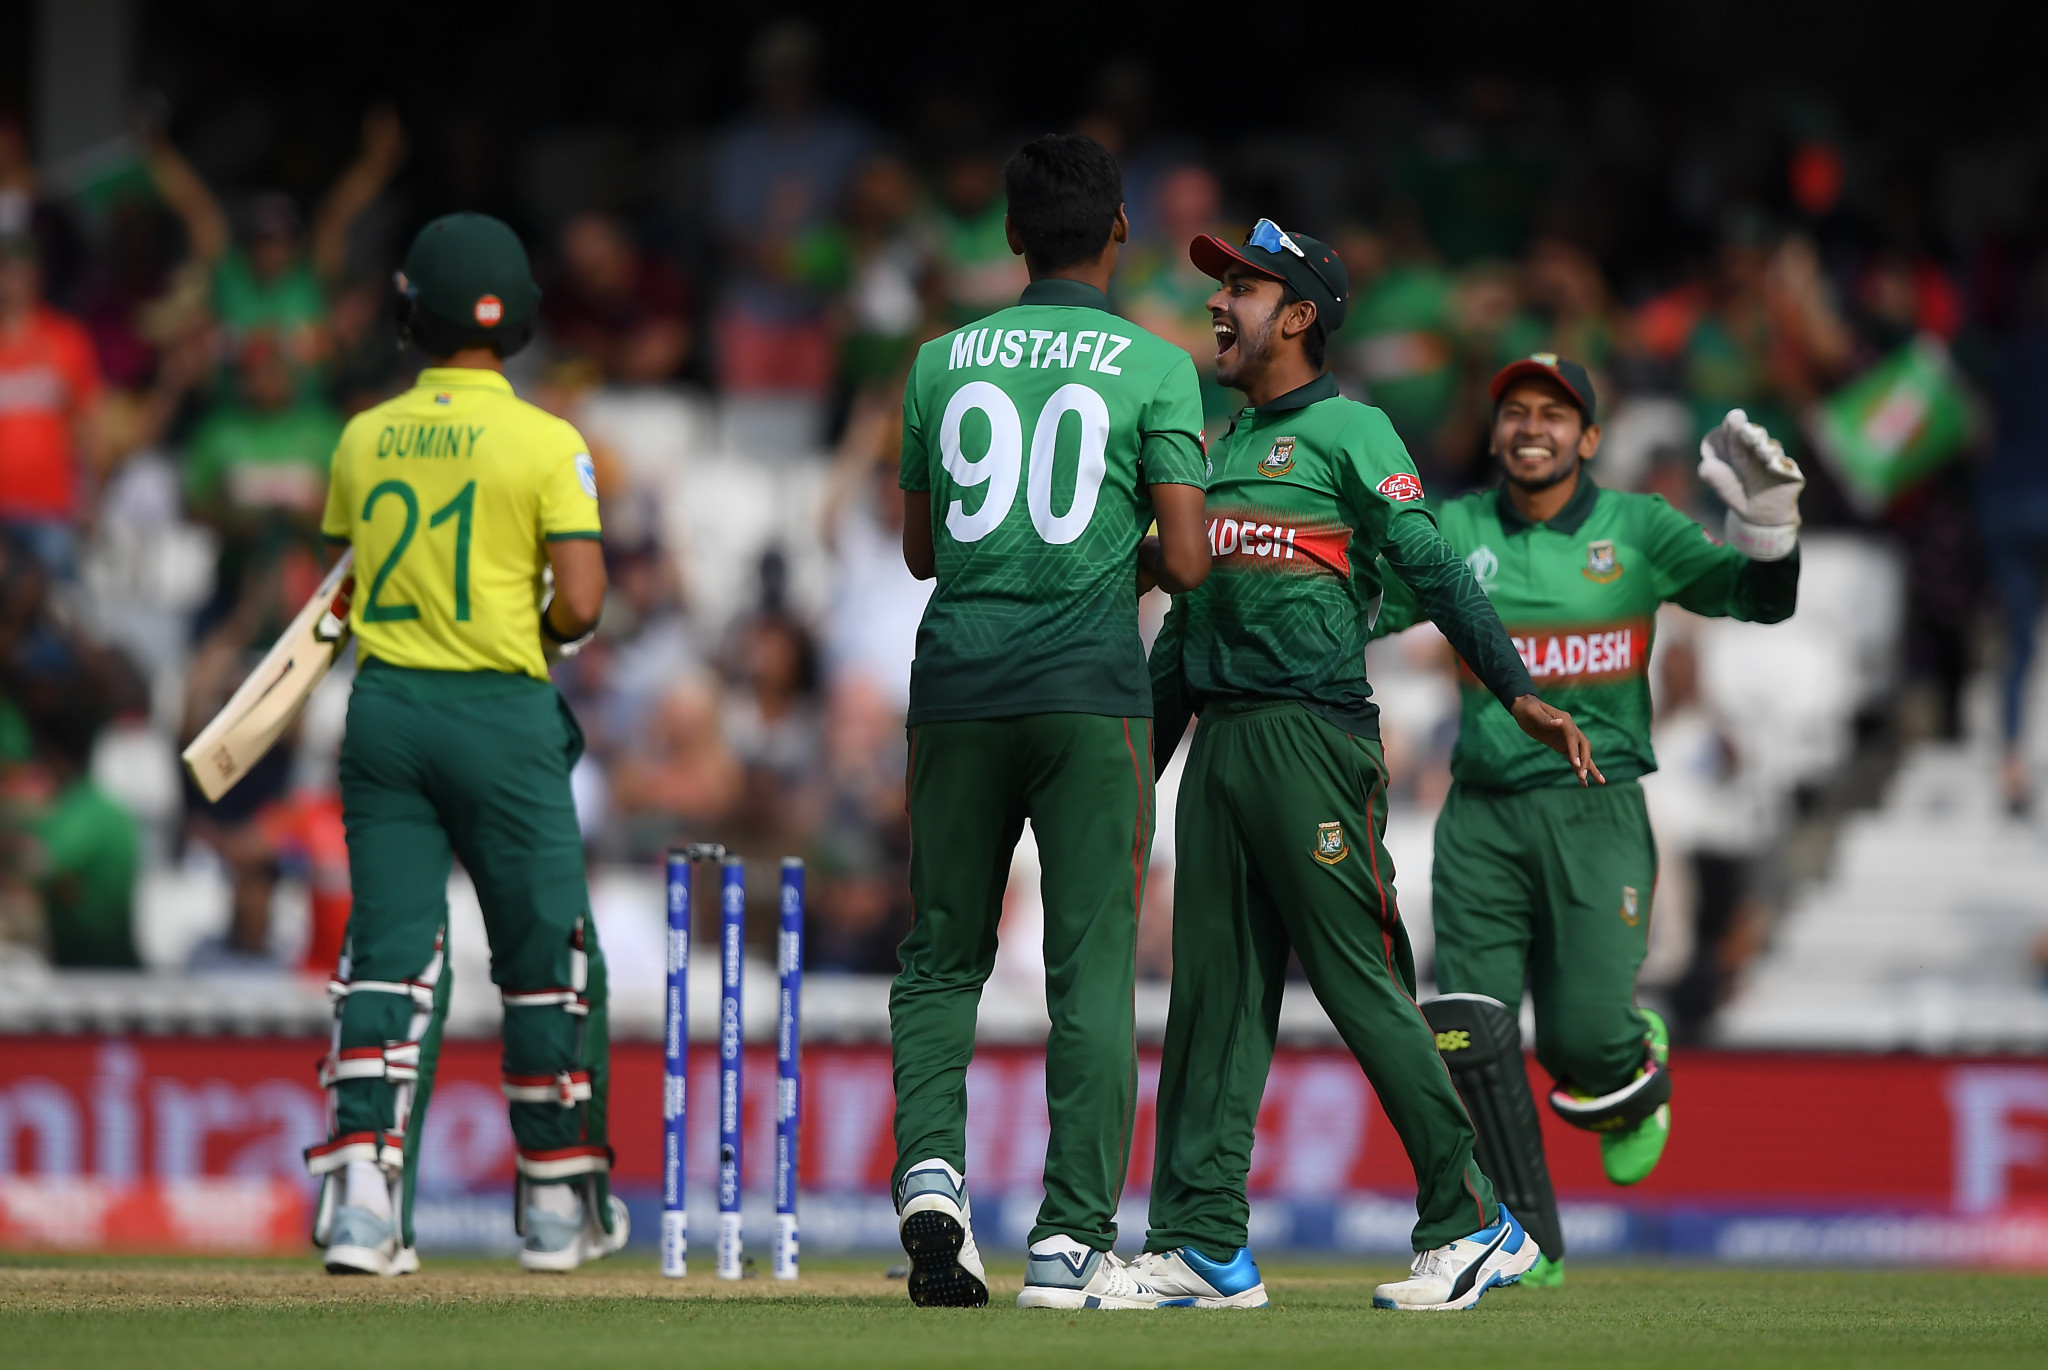 Bangladesh earn shock victory over South Africa at Cricket World Cup